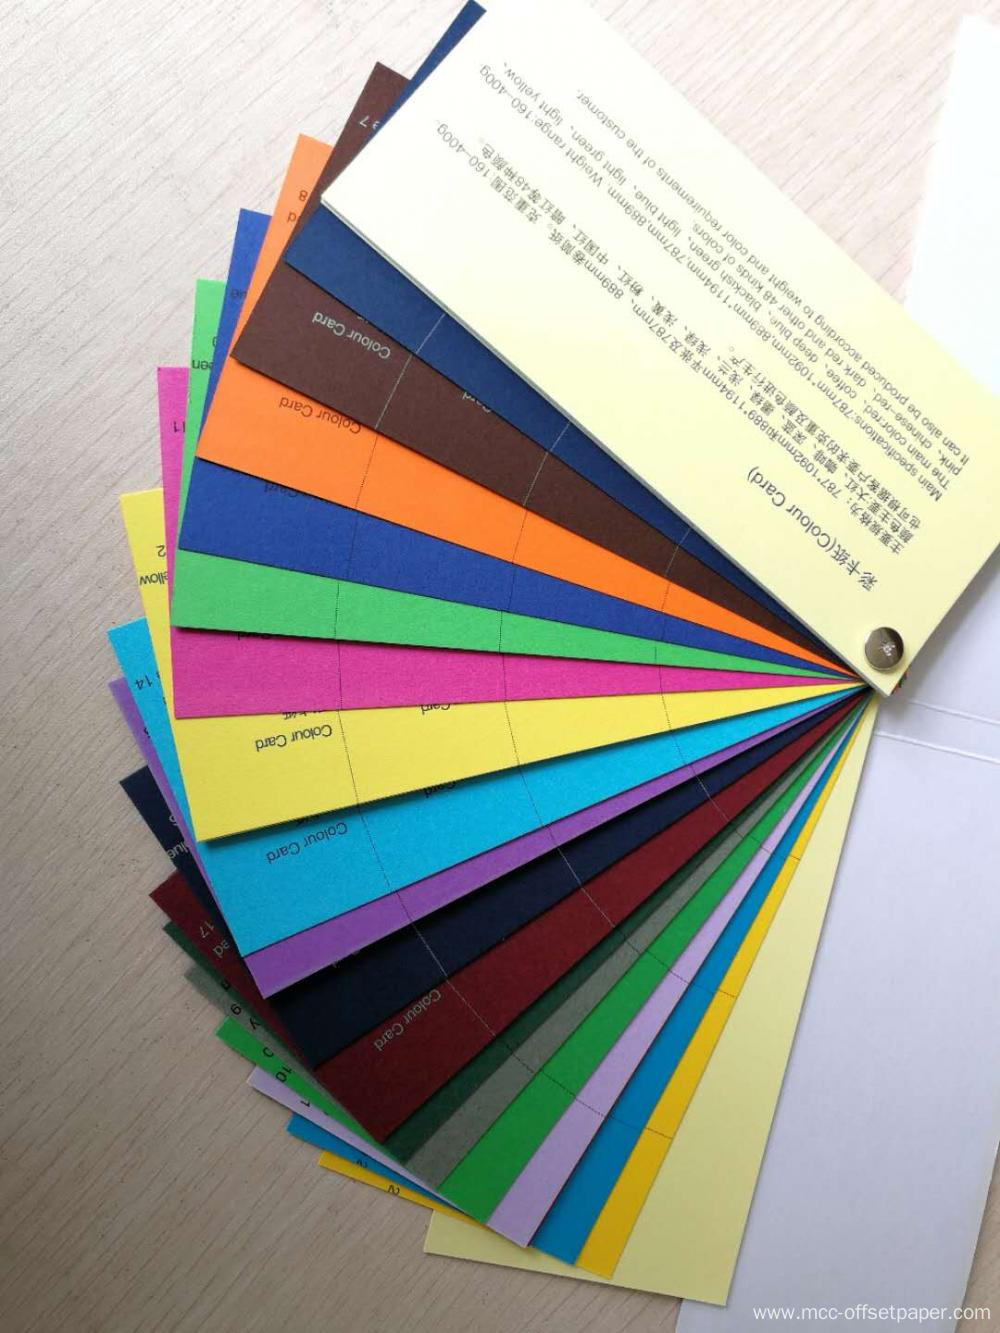 color packaging paper 160-400g